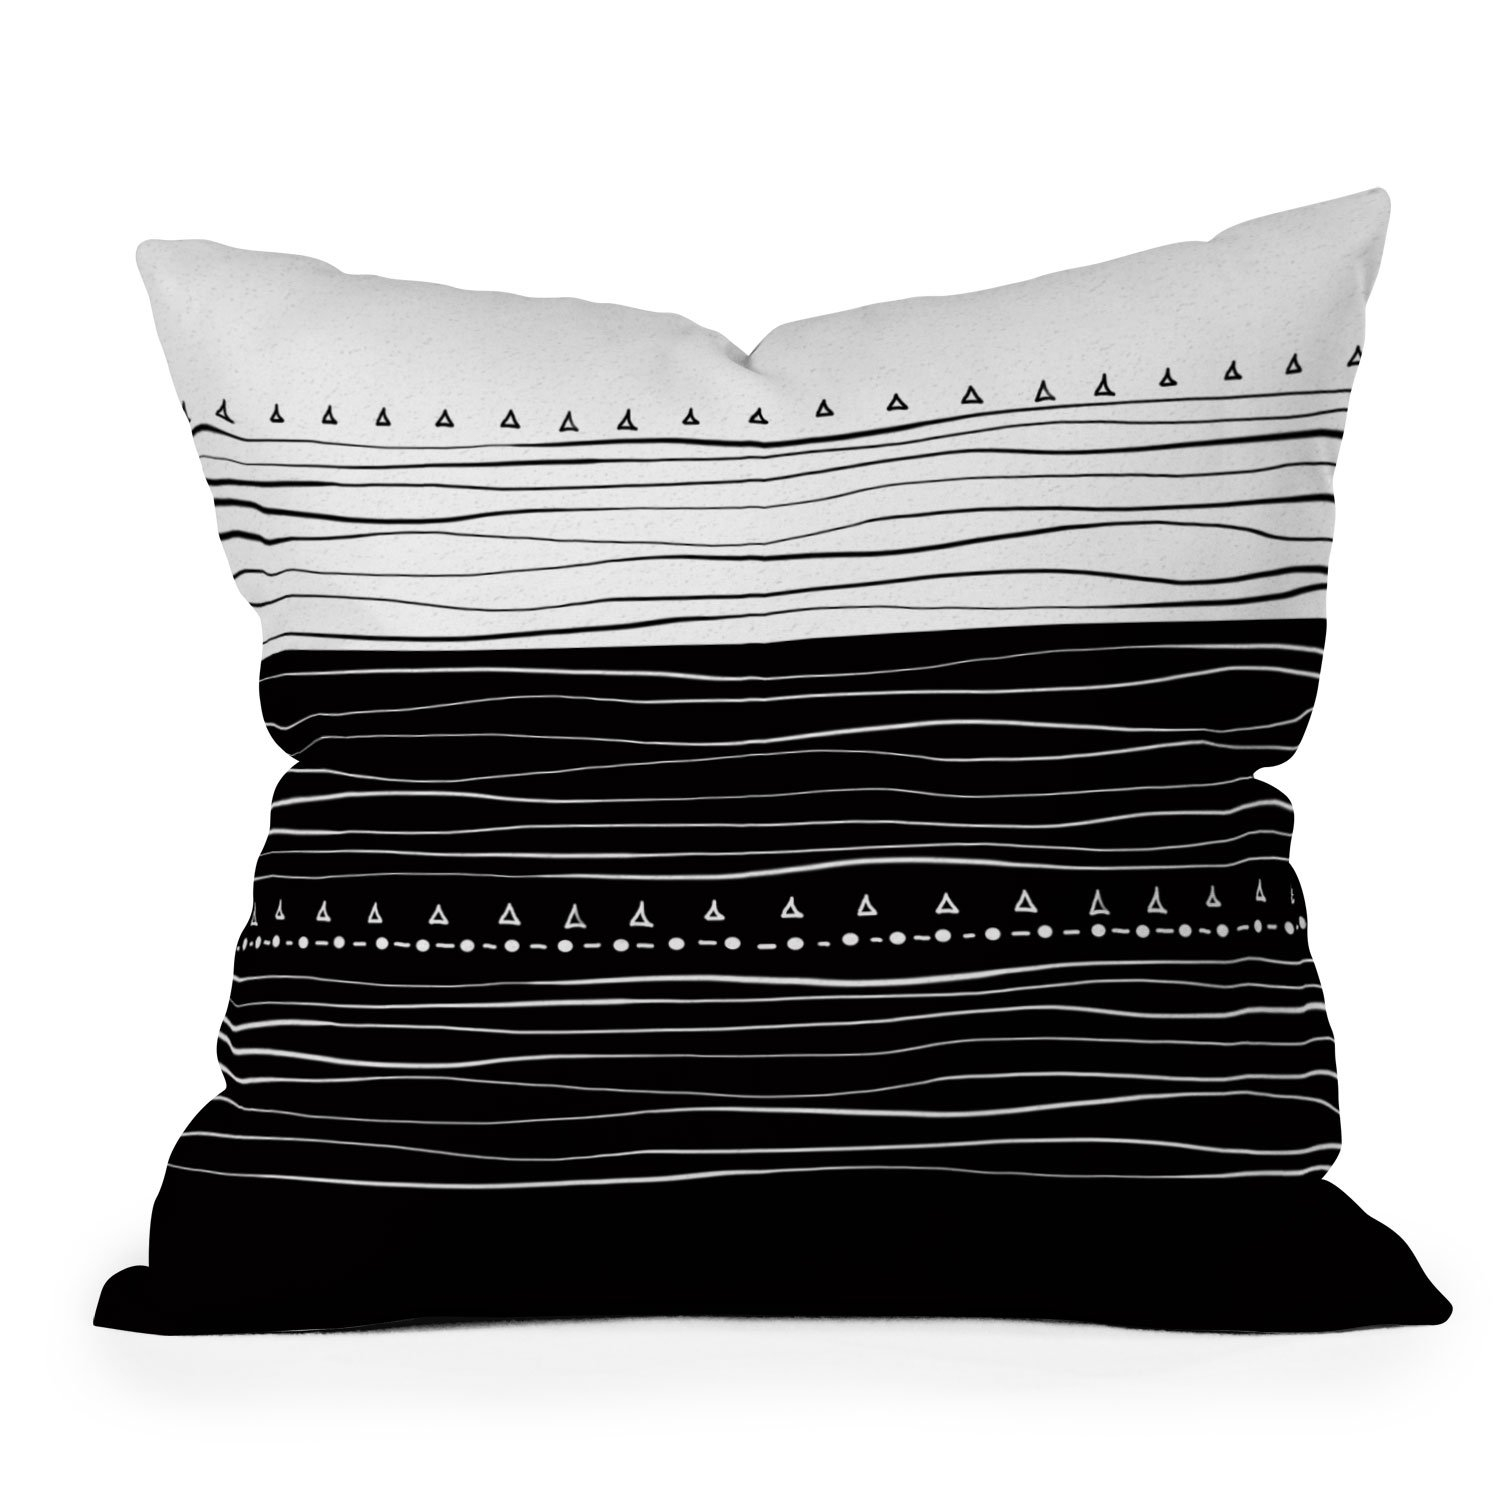 Image of Viviana Gonzalez Black and white collection 01 Throw Pillow